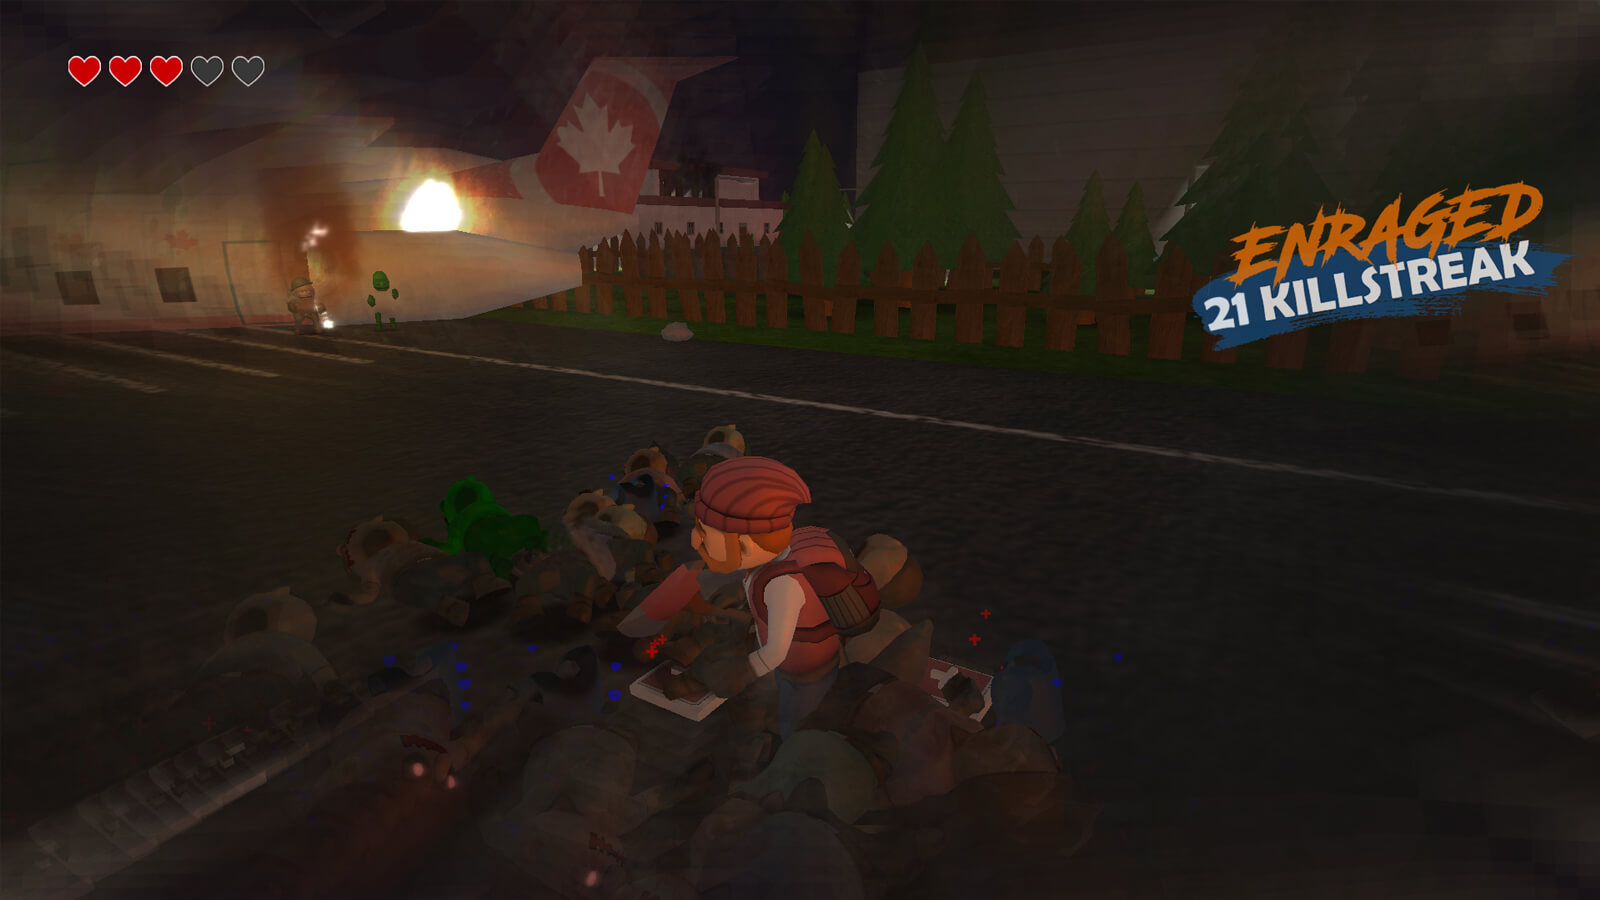 The player's character is holding an ax surrounded by bodies of fallen zombies